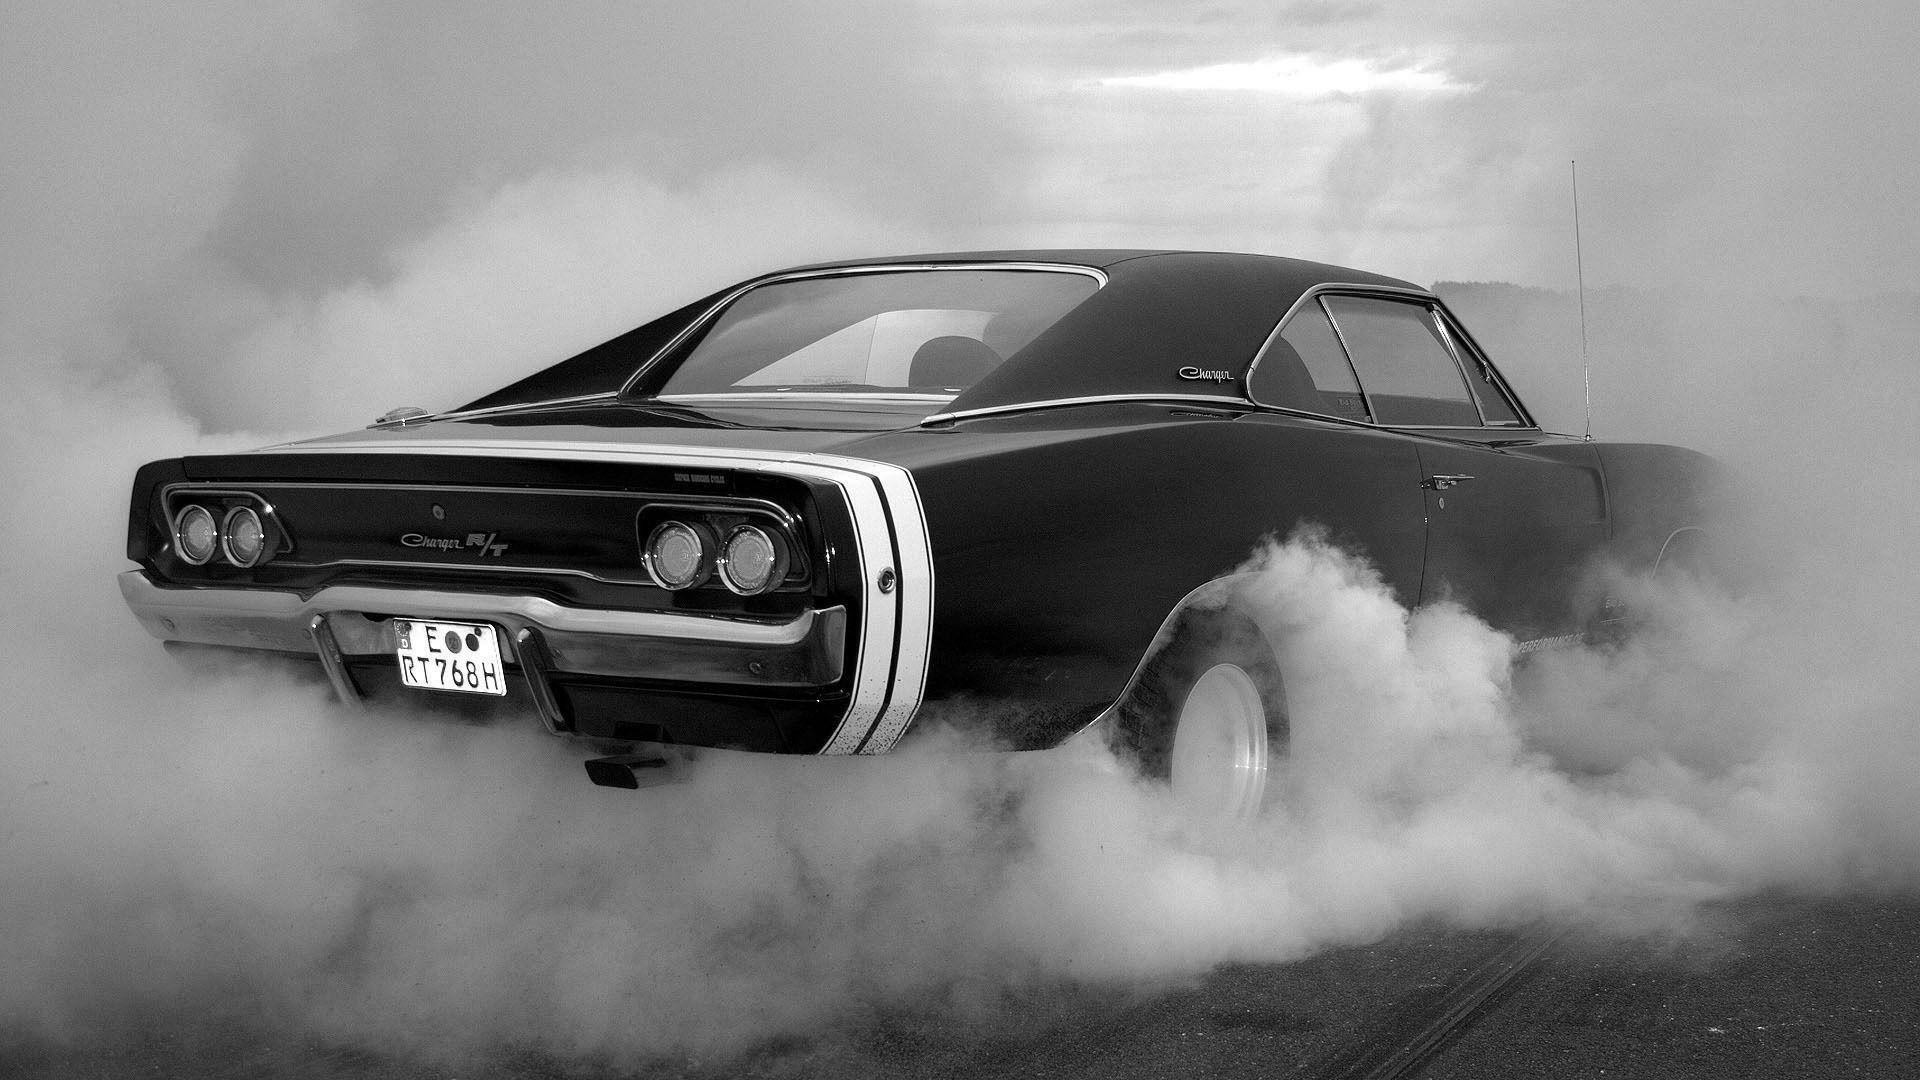 Dodge Challenger 1970 Wallpaper 1987 Dodge Challenger Wallpapers 58 Images